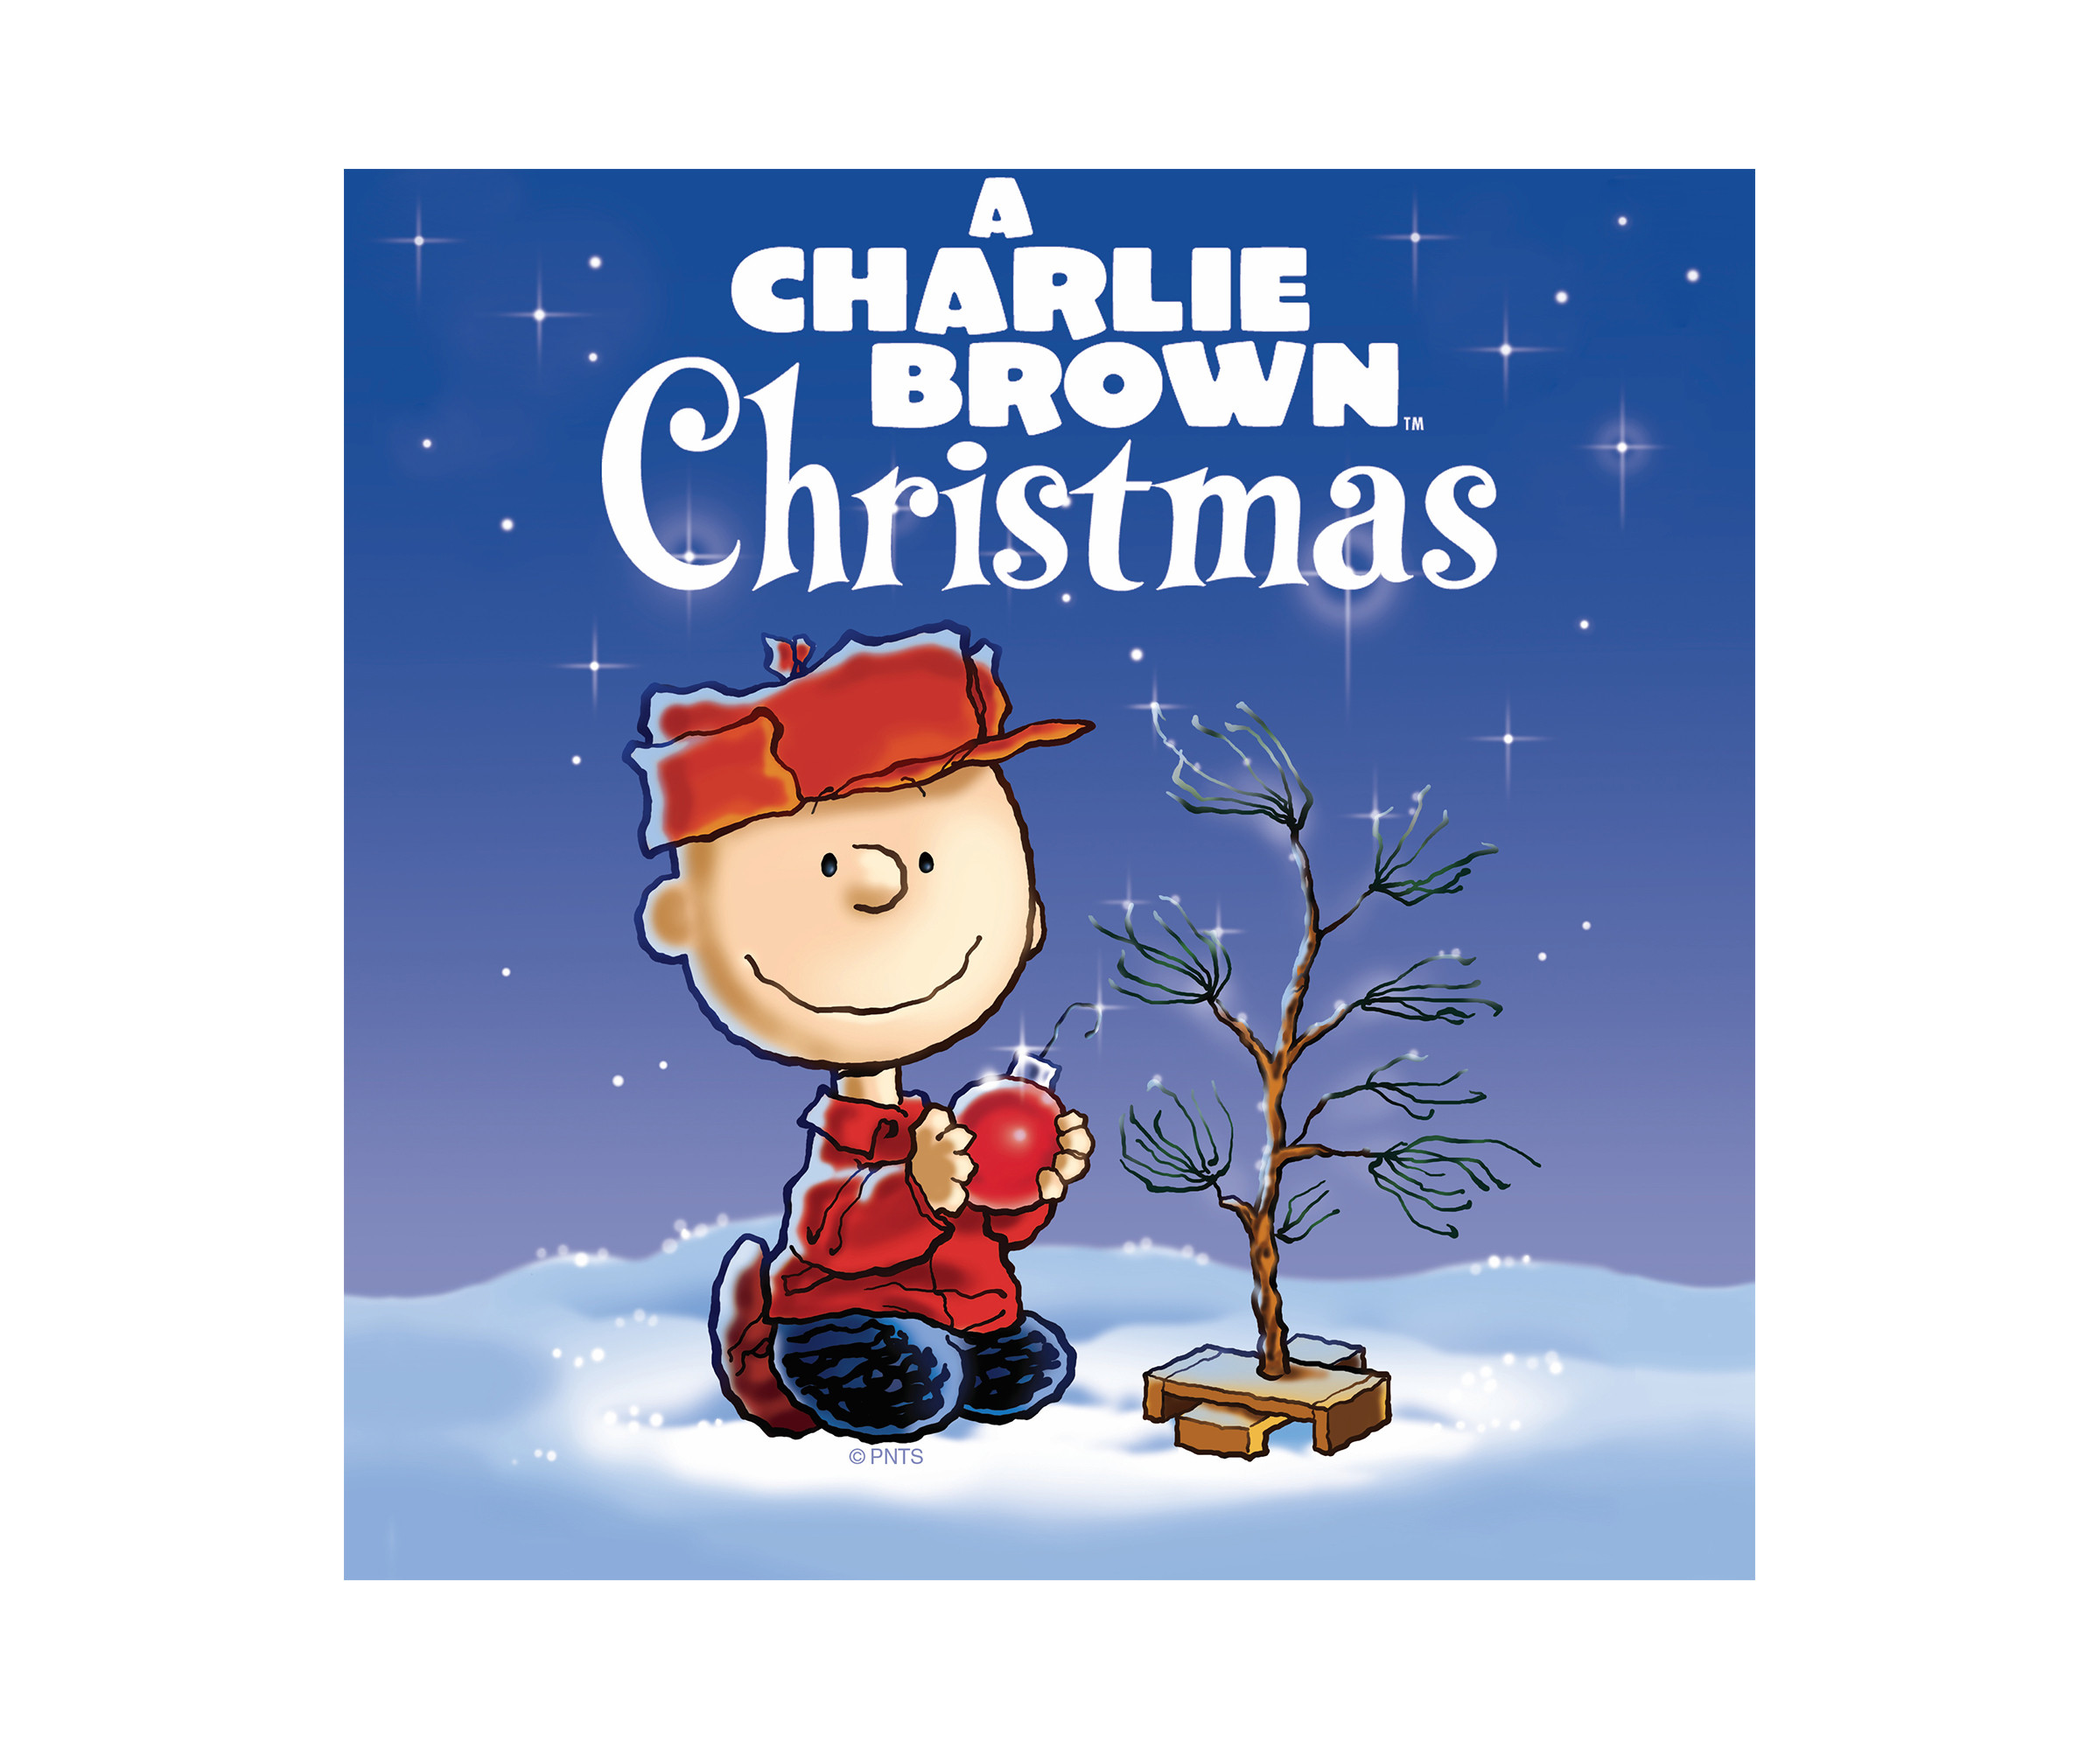 2400x2000 Casting Announced for A CHARLIE BROWN CHRISTMAS